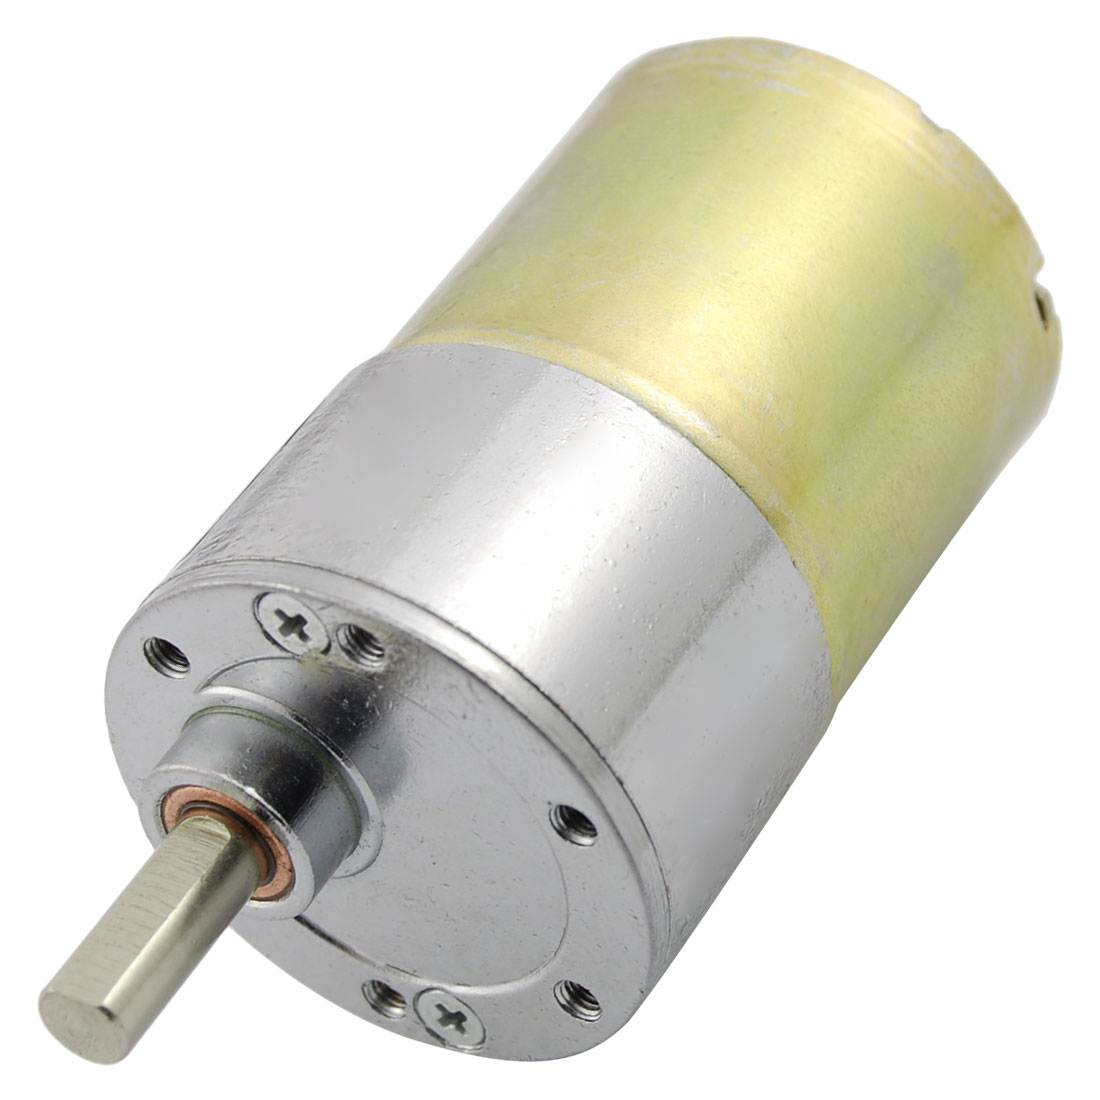 12VDC-200RPM-160mA-1-02Kgcm-2-Pin-Permanent-Magnet-Gear-Motor-Replacement